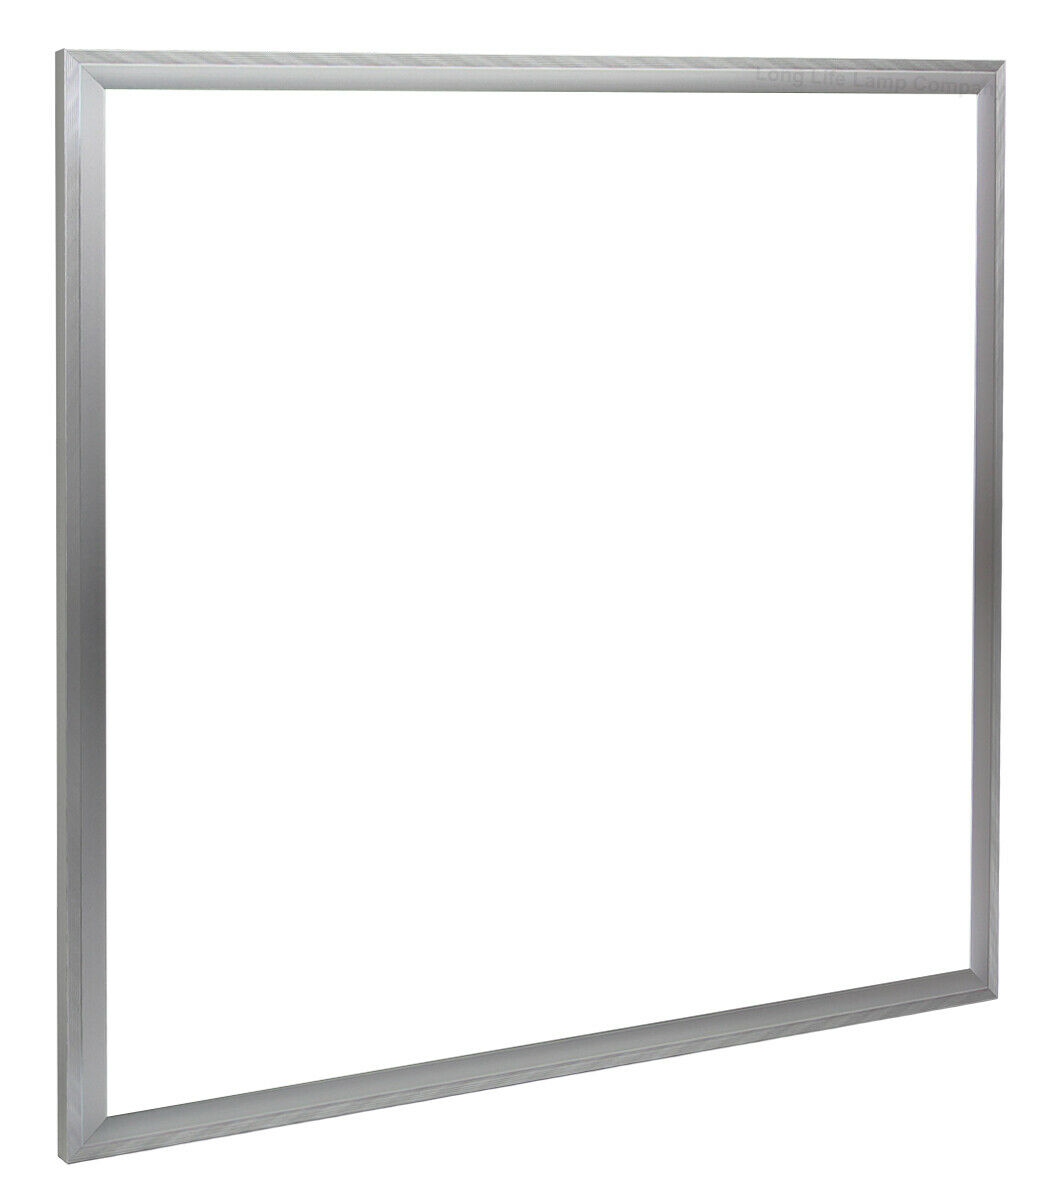 10 x Ceiling Suspended Recessed LED Panel White Light Office Salon 600 x 600